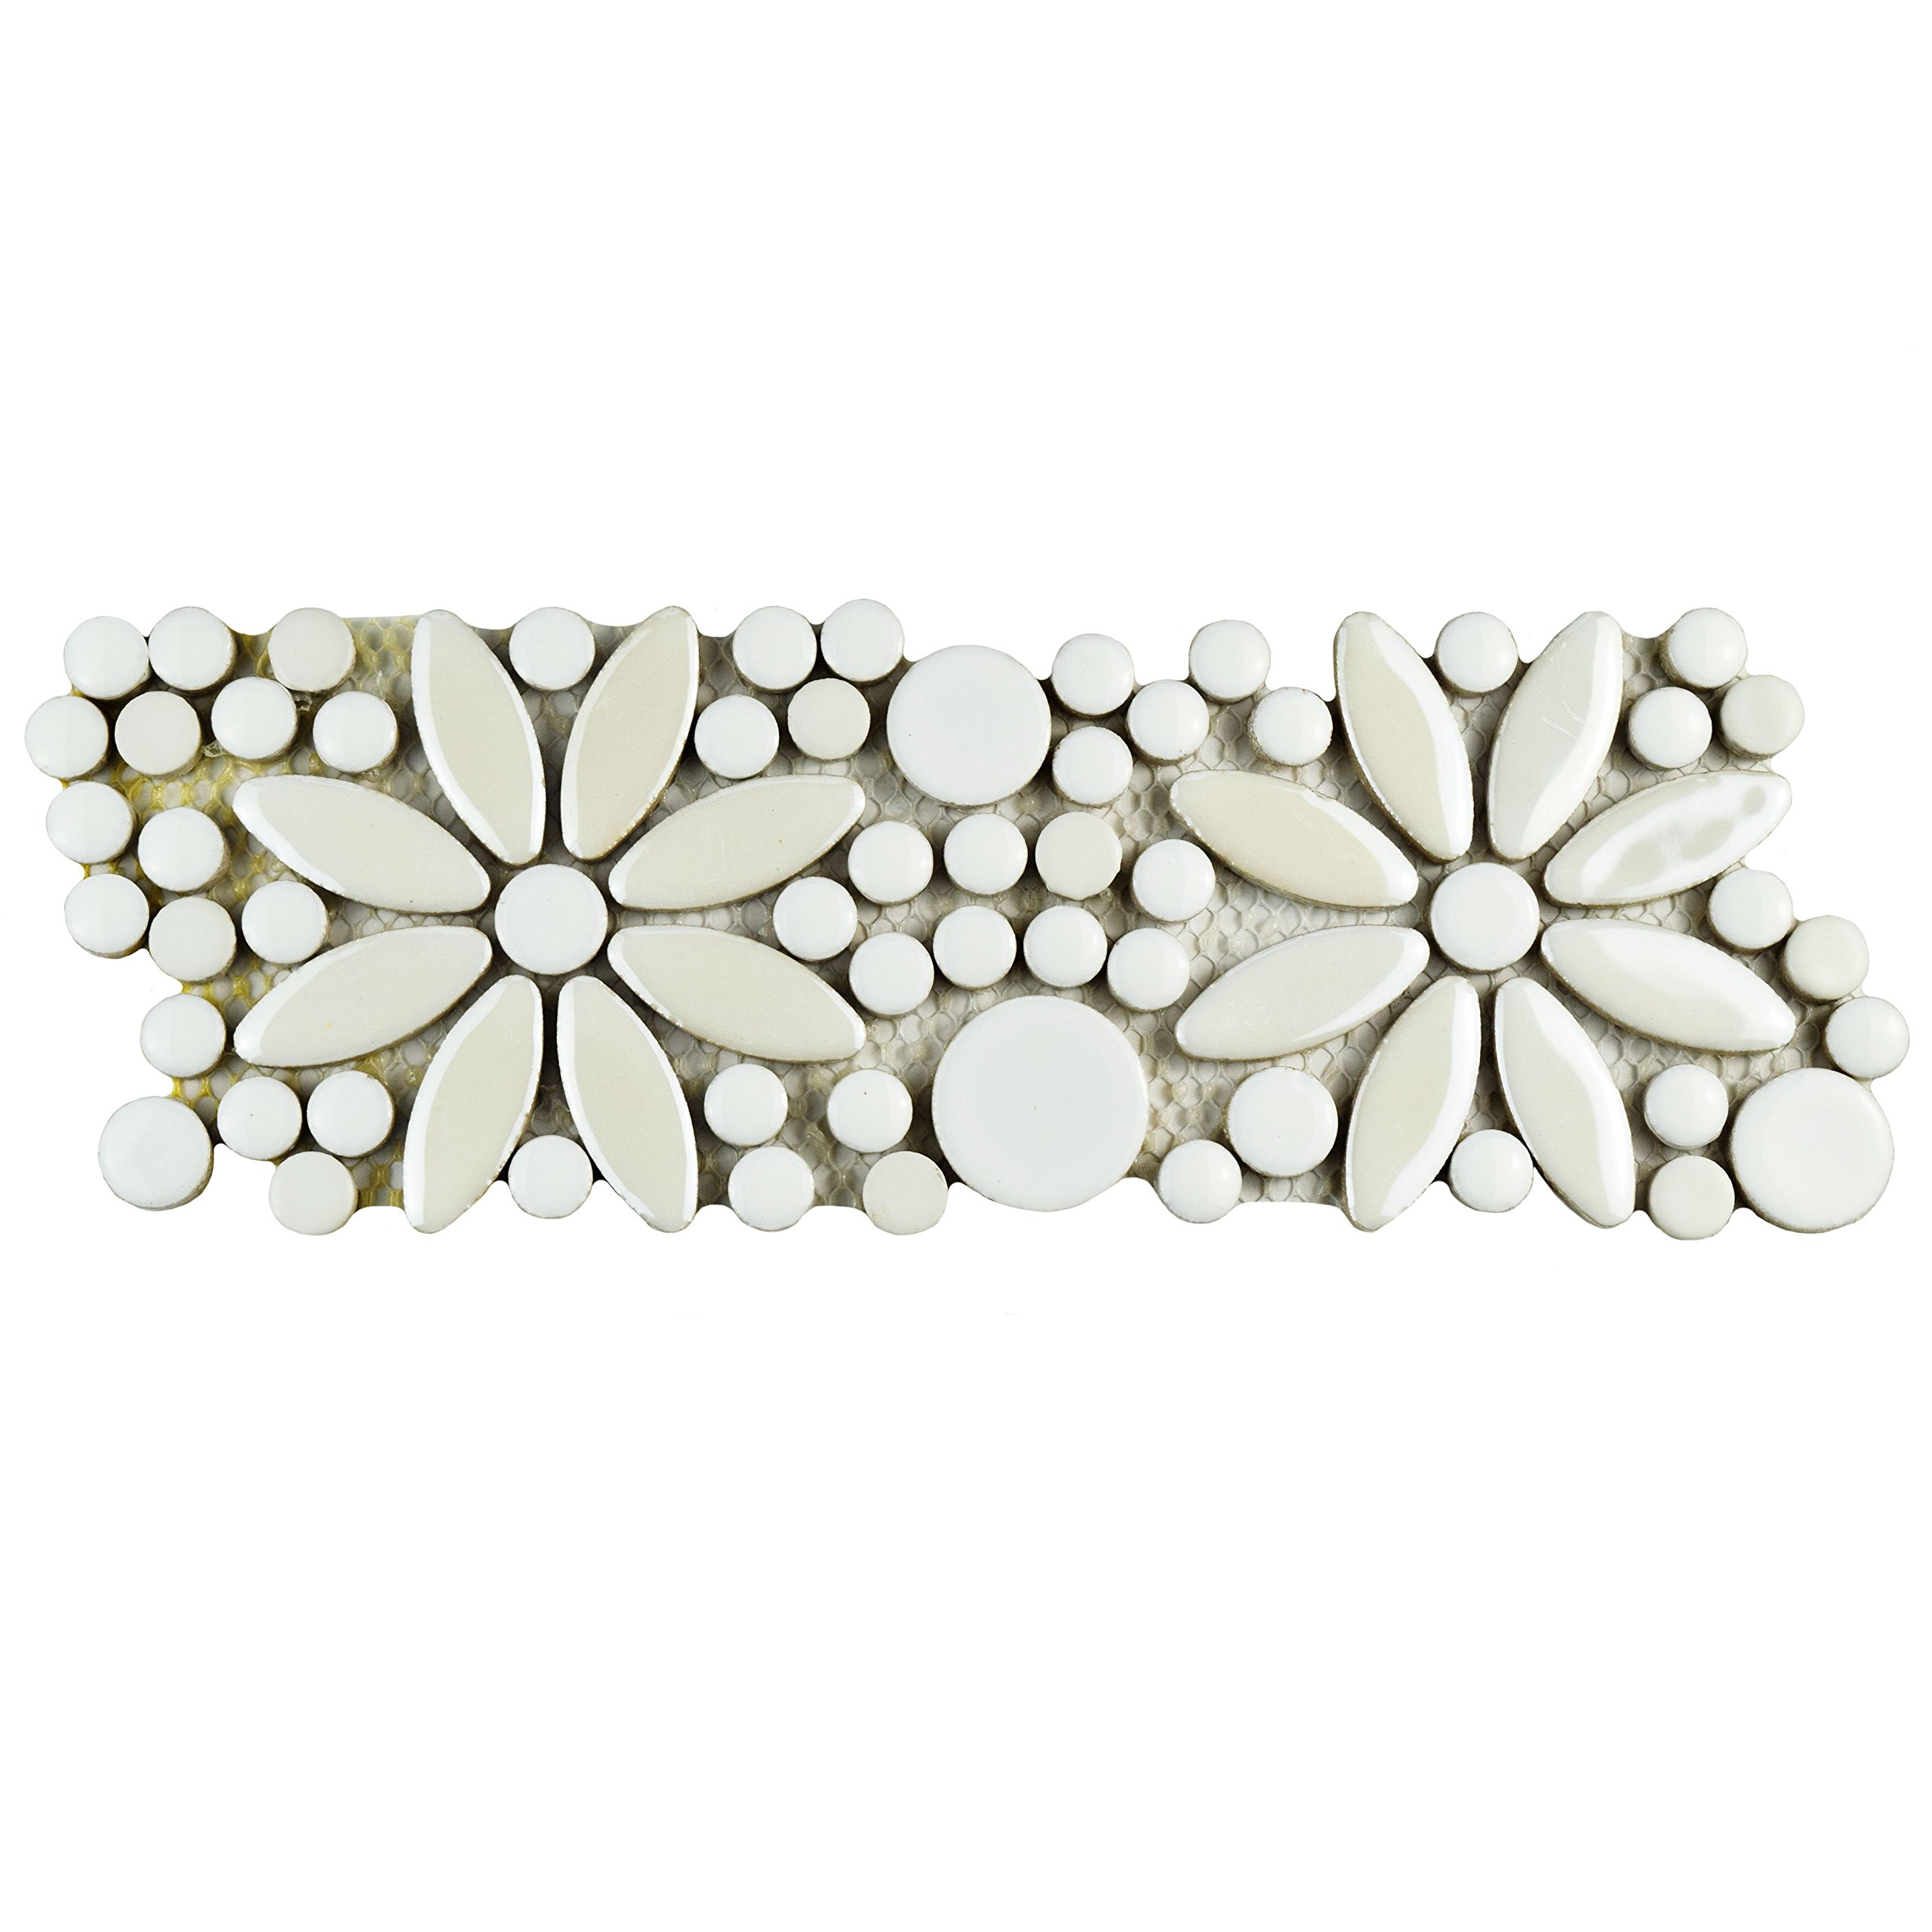 SomerTile FSHGFBWH Ursa Flower Porcelain Mosaic Border Floor and Wall Tile, 4.25'' x 12.75'', White by SOMERTILE